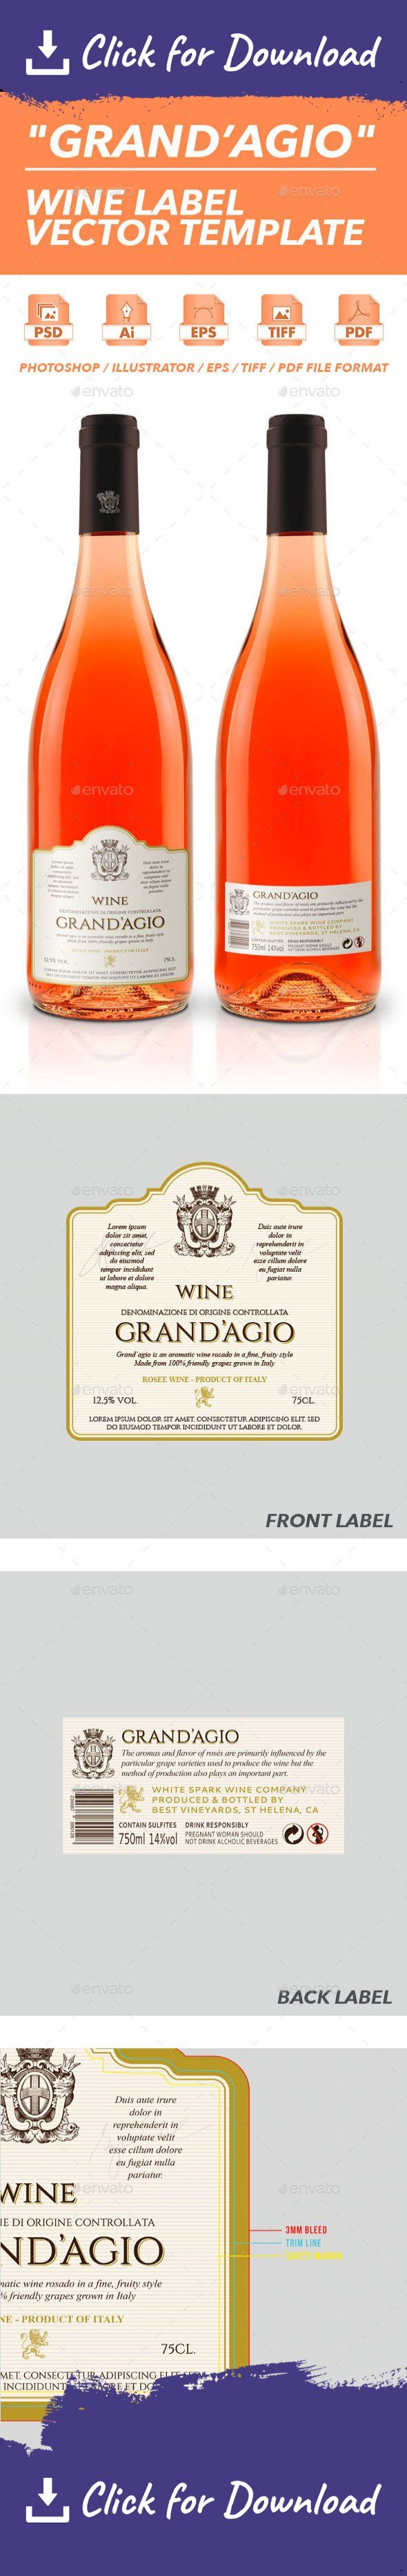 ads, advertising, alcohol, alcool, bottle, drink, elegant, glass, grapes, label, mockup, realistic, red, settler, the, vector, white wine, wine, winery Grand'Agio – Wine Label Vector Template	A sharp white wine label design formatted in print ready CMYK color scheme, designed in print resolution at 300 DPI. 100% vector shape (Photoshop also) for any kind of resizing. Provided file formats include Adobe Illustrator AI, Adobe Photoshop PSD, EPS, TIFF and PDF. Each file is equipped...